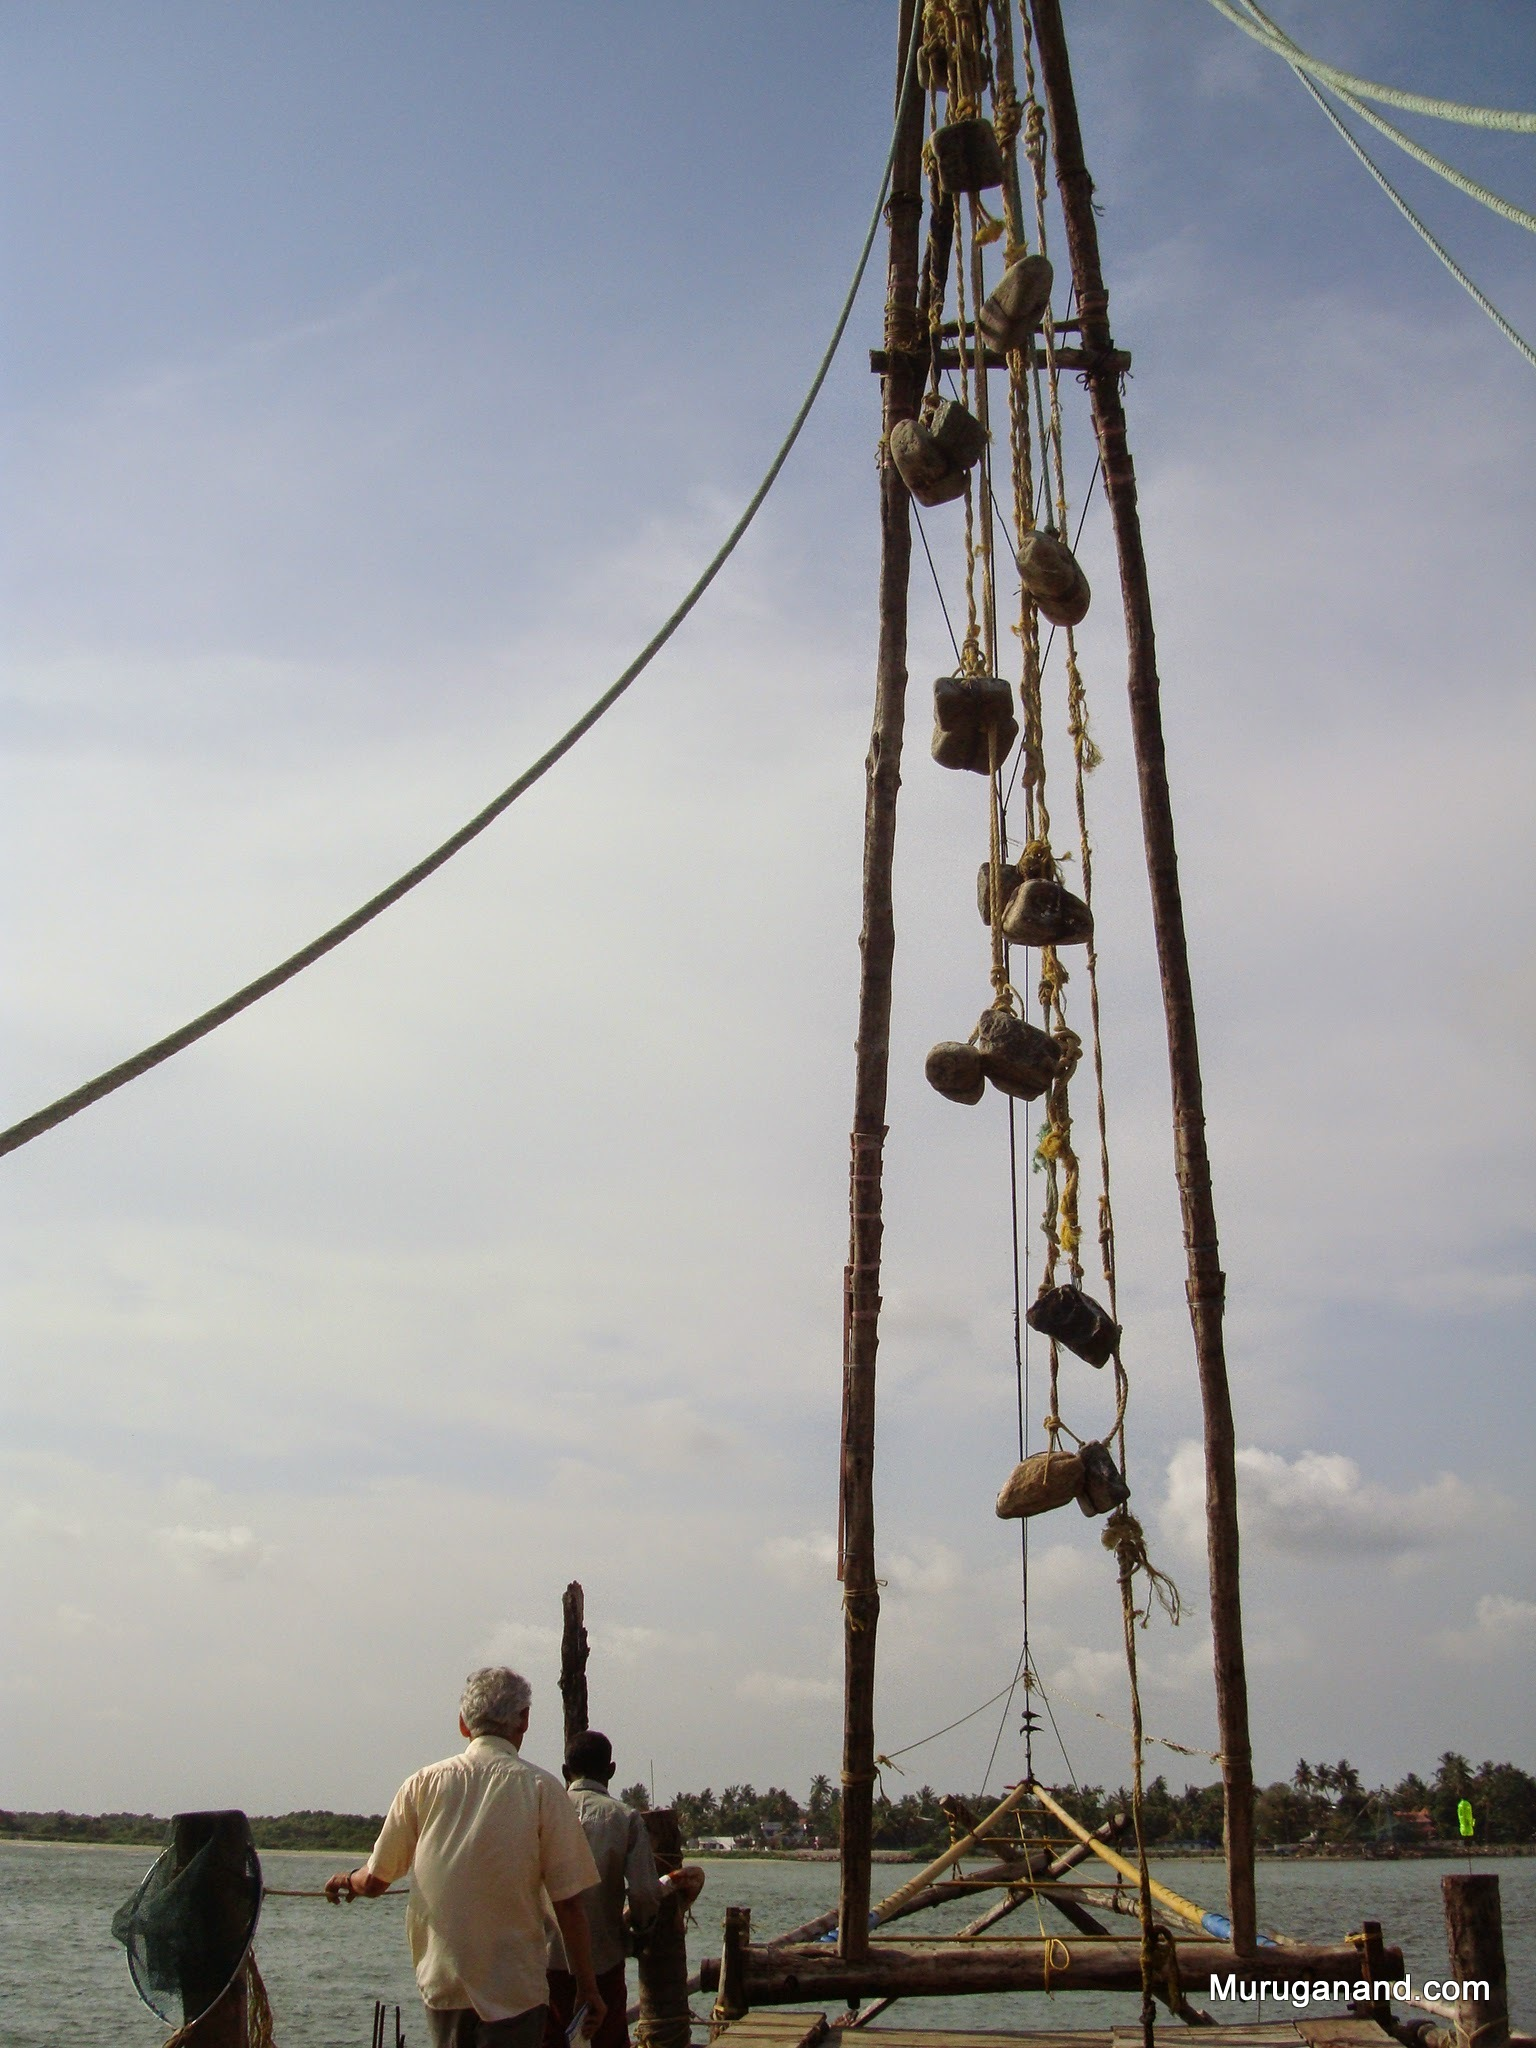 Balancing weights used to lift the net after catching fish